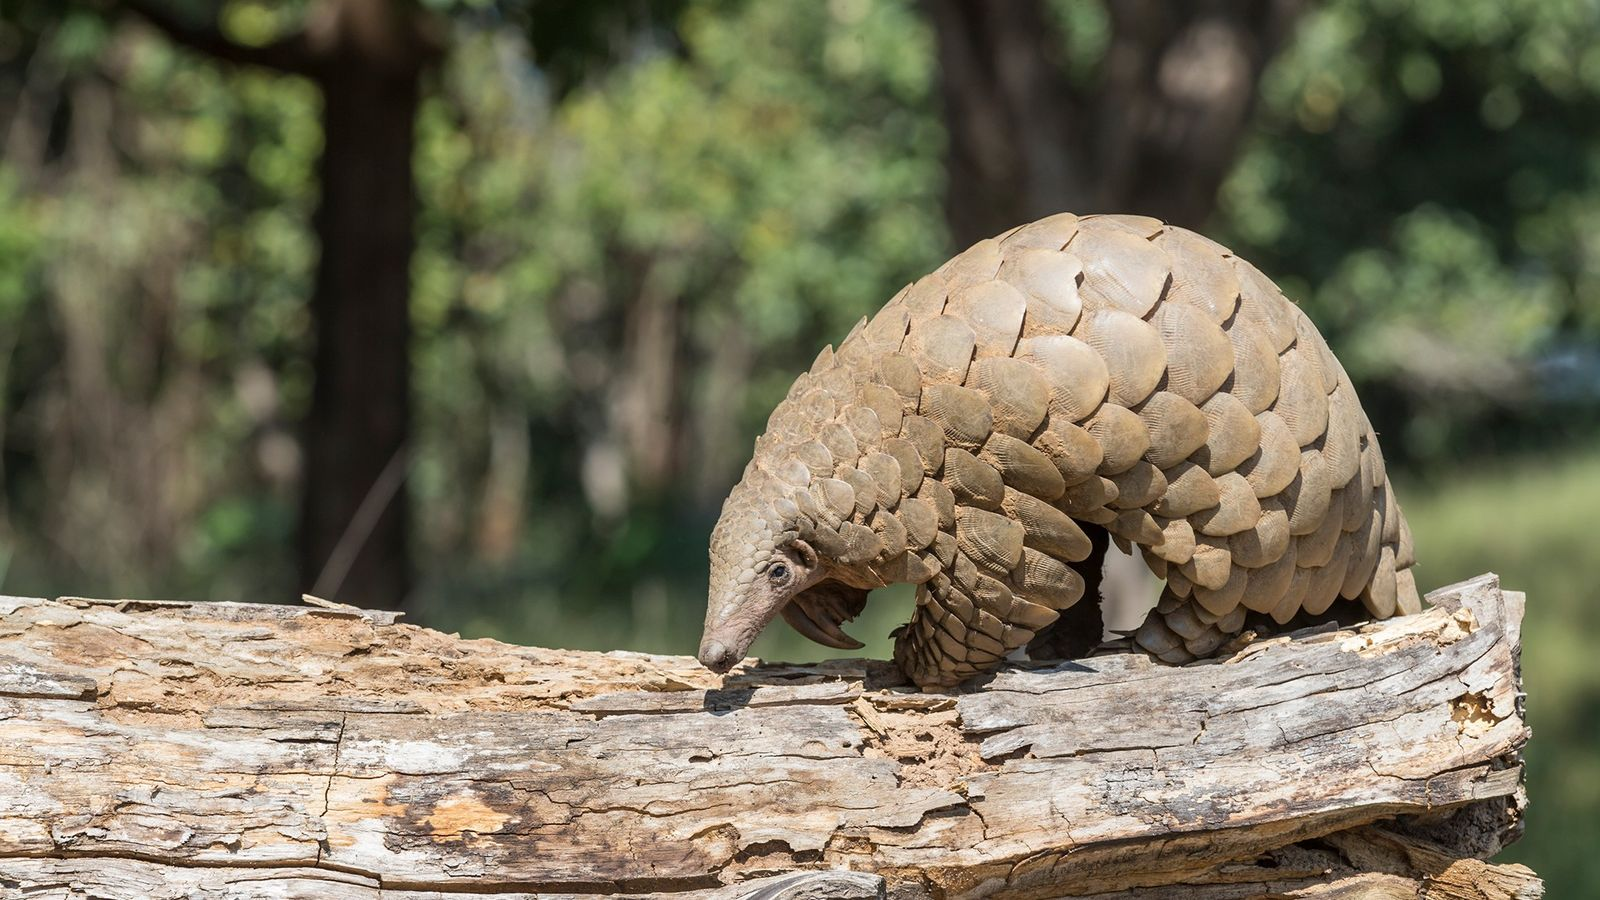 The endangered Indian pangolin, pictured here, and the critically endangered Chinese pangolin both live in India, ...